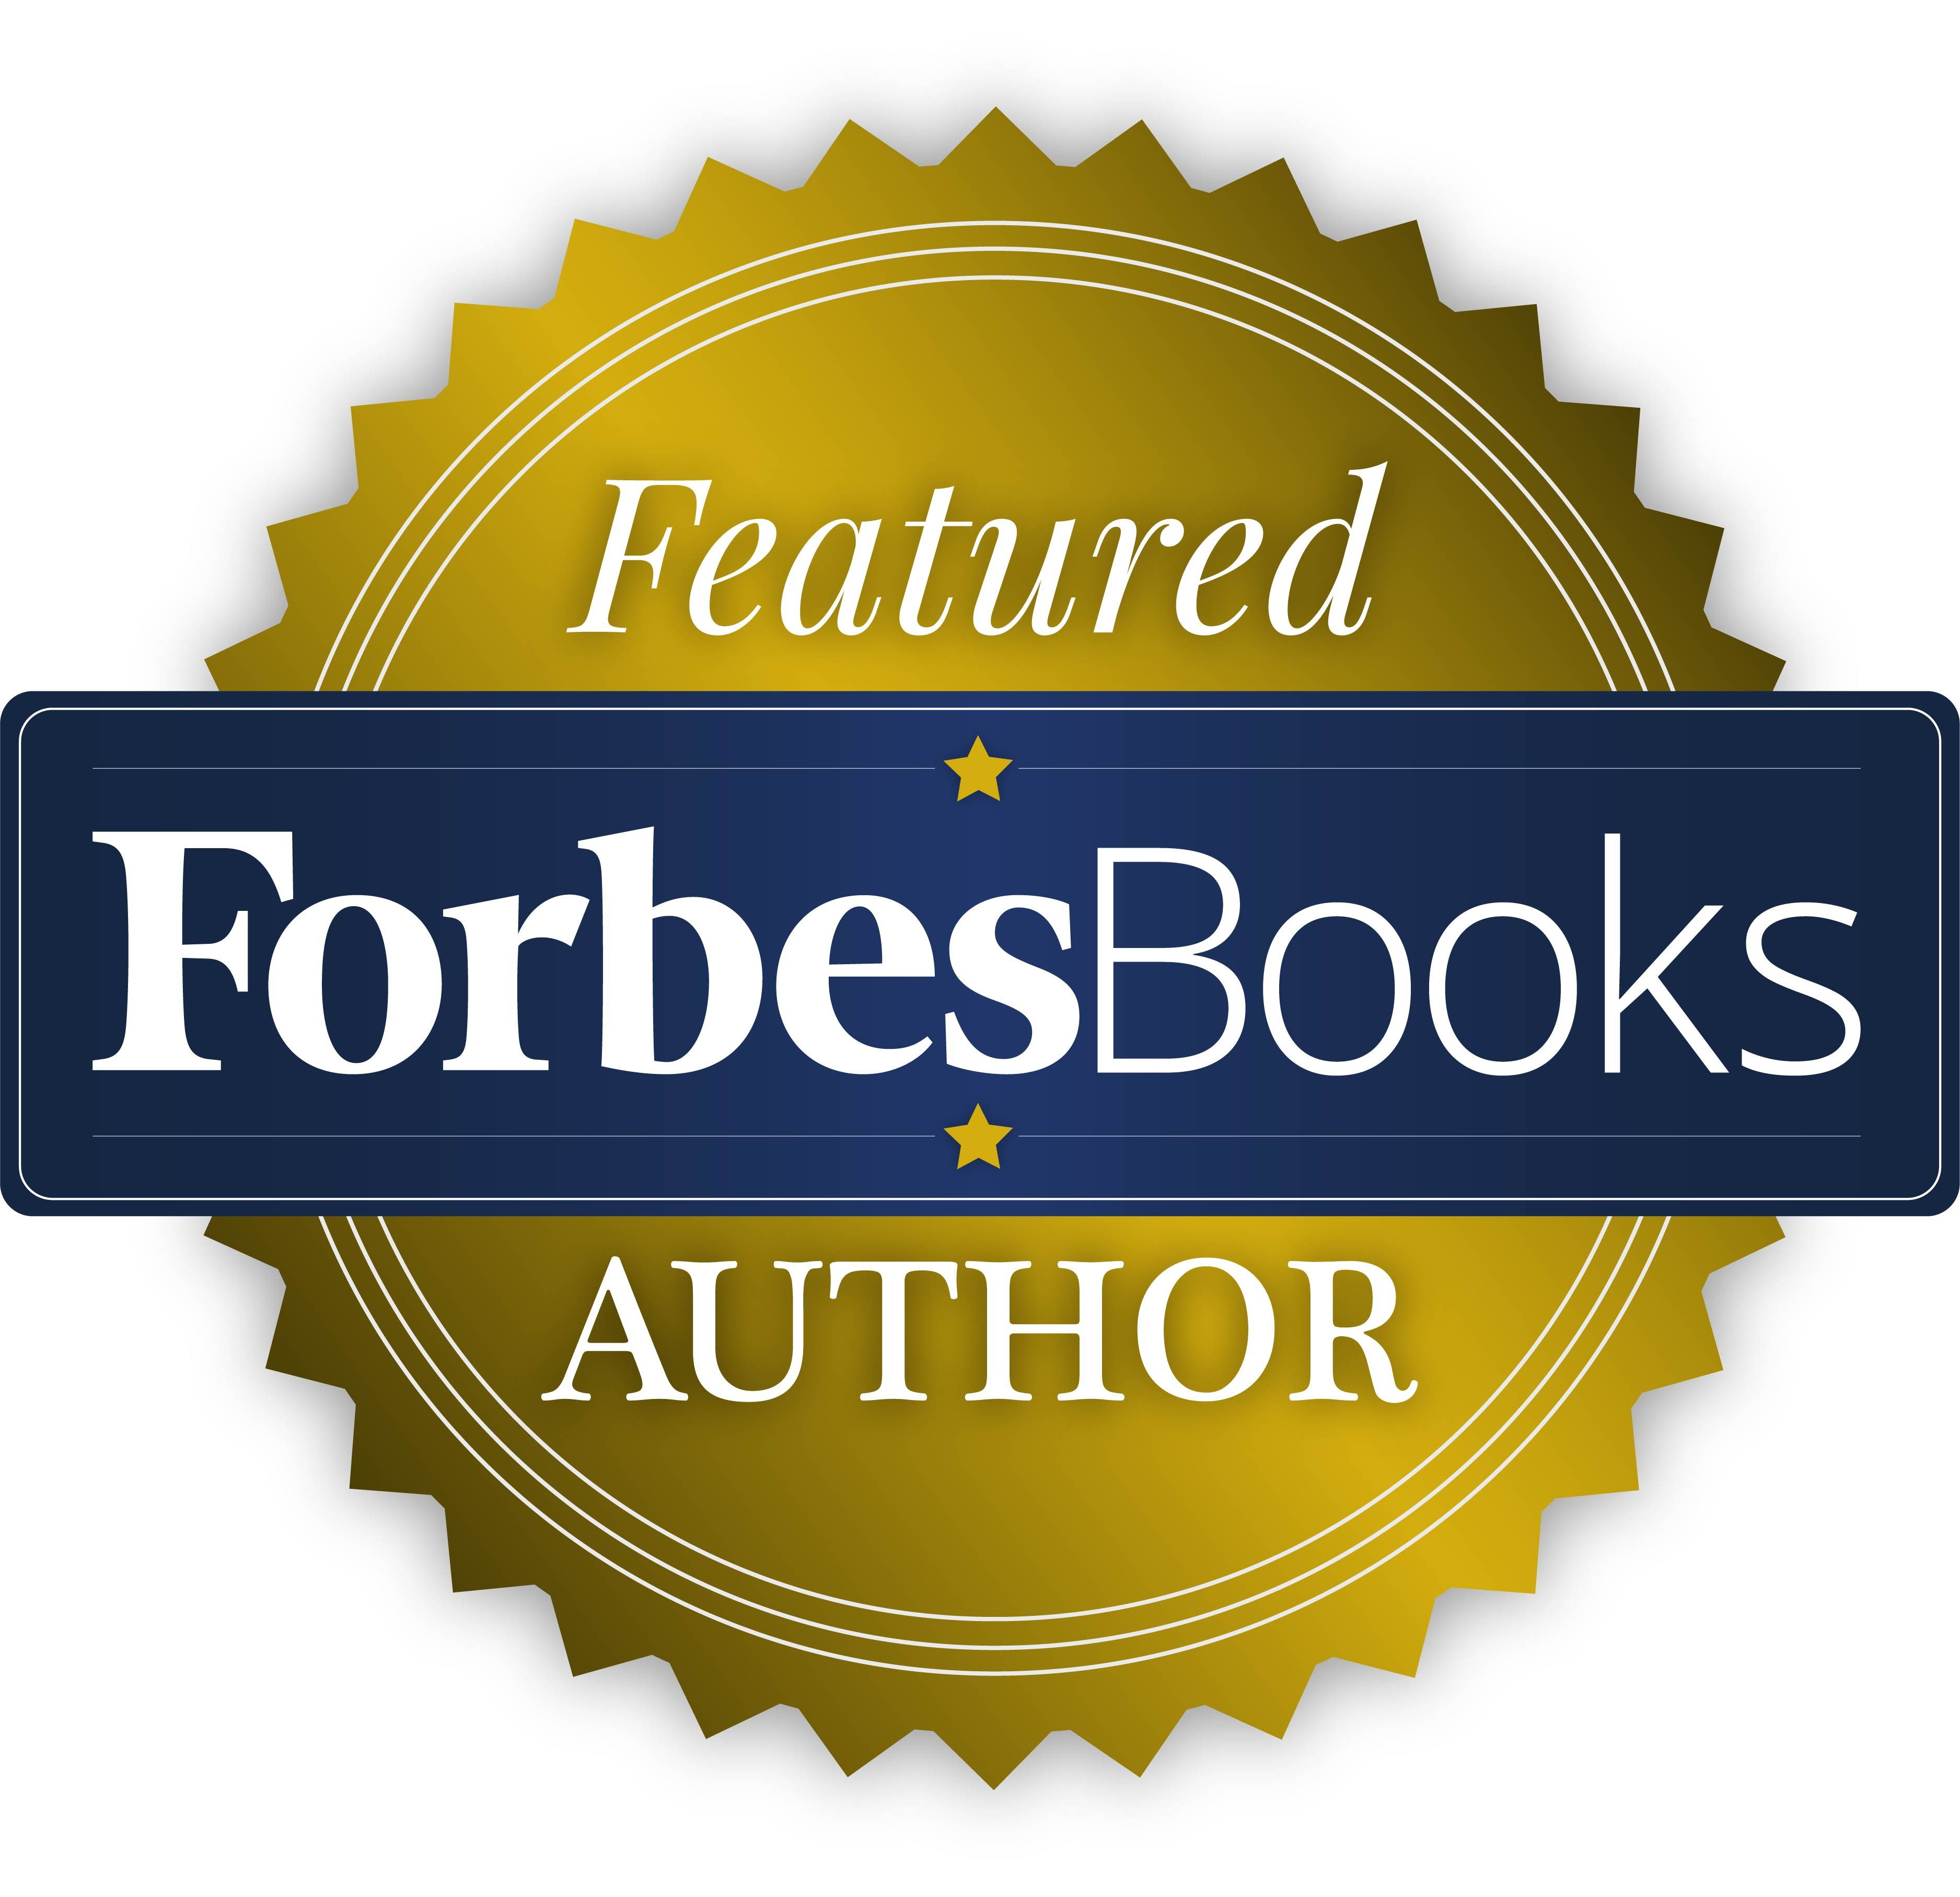 ForbesBooksFeaturedAuthorBadge-1